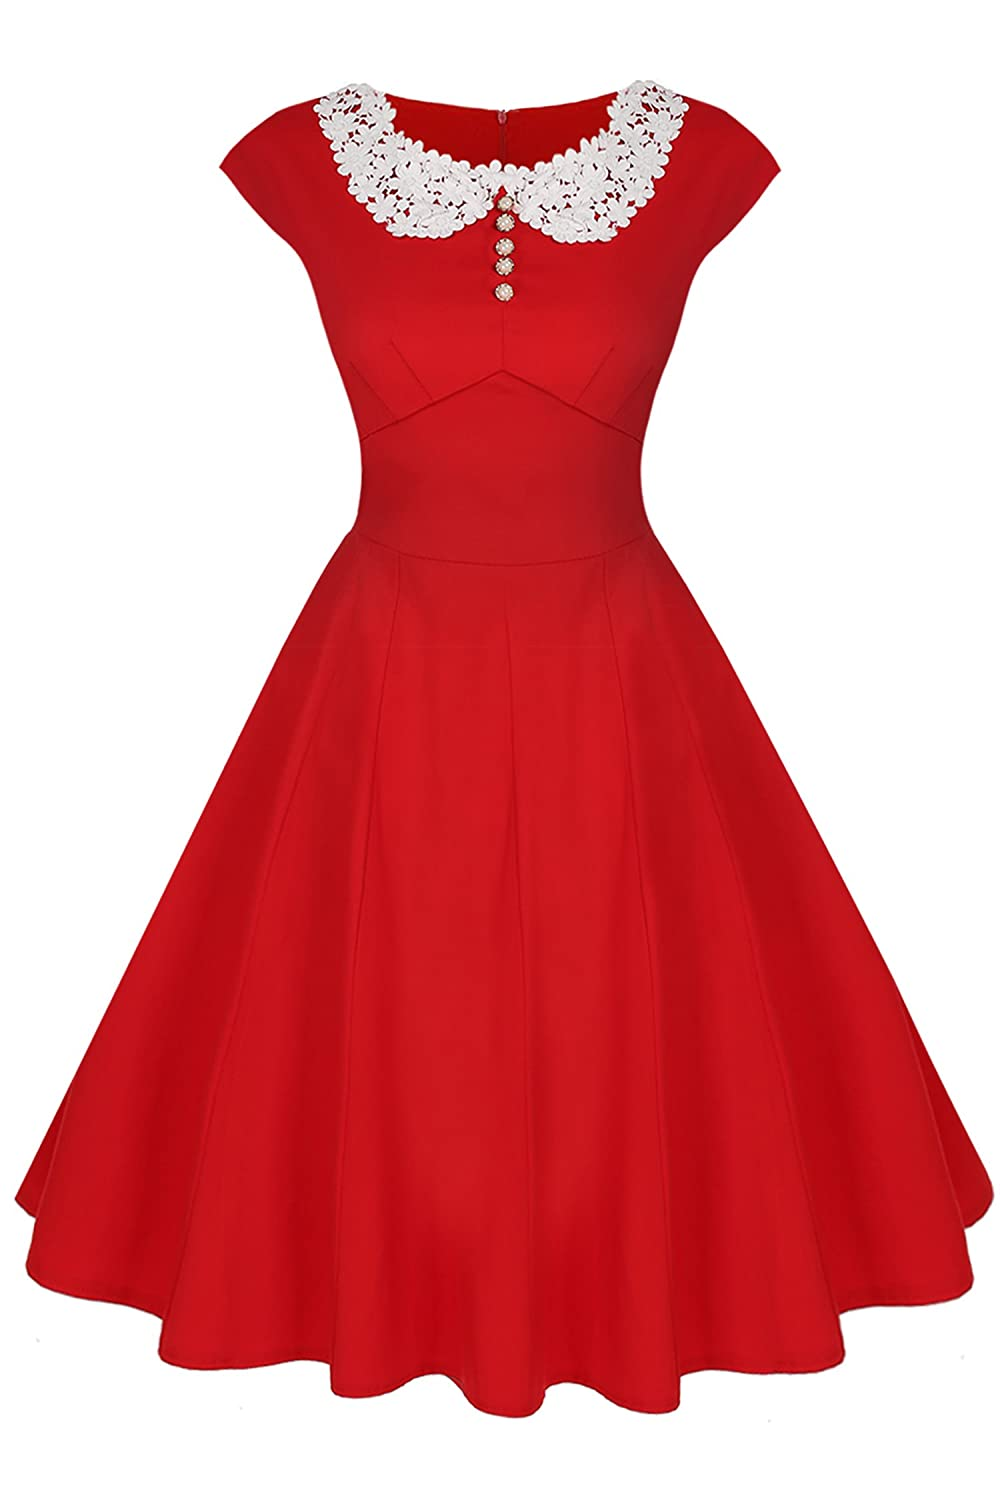 50s Costumes | 50s Halloween Costumes ACEVOG Womens Classy Vintage Audrey Hepburn Style 1940s Rockabilly Evening Dress $19.99 AT vintagedancer.com